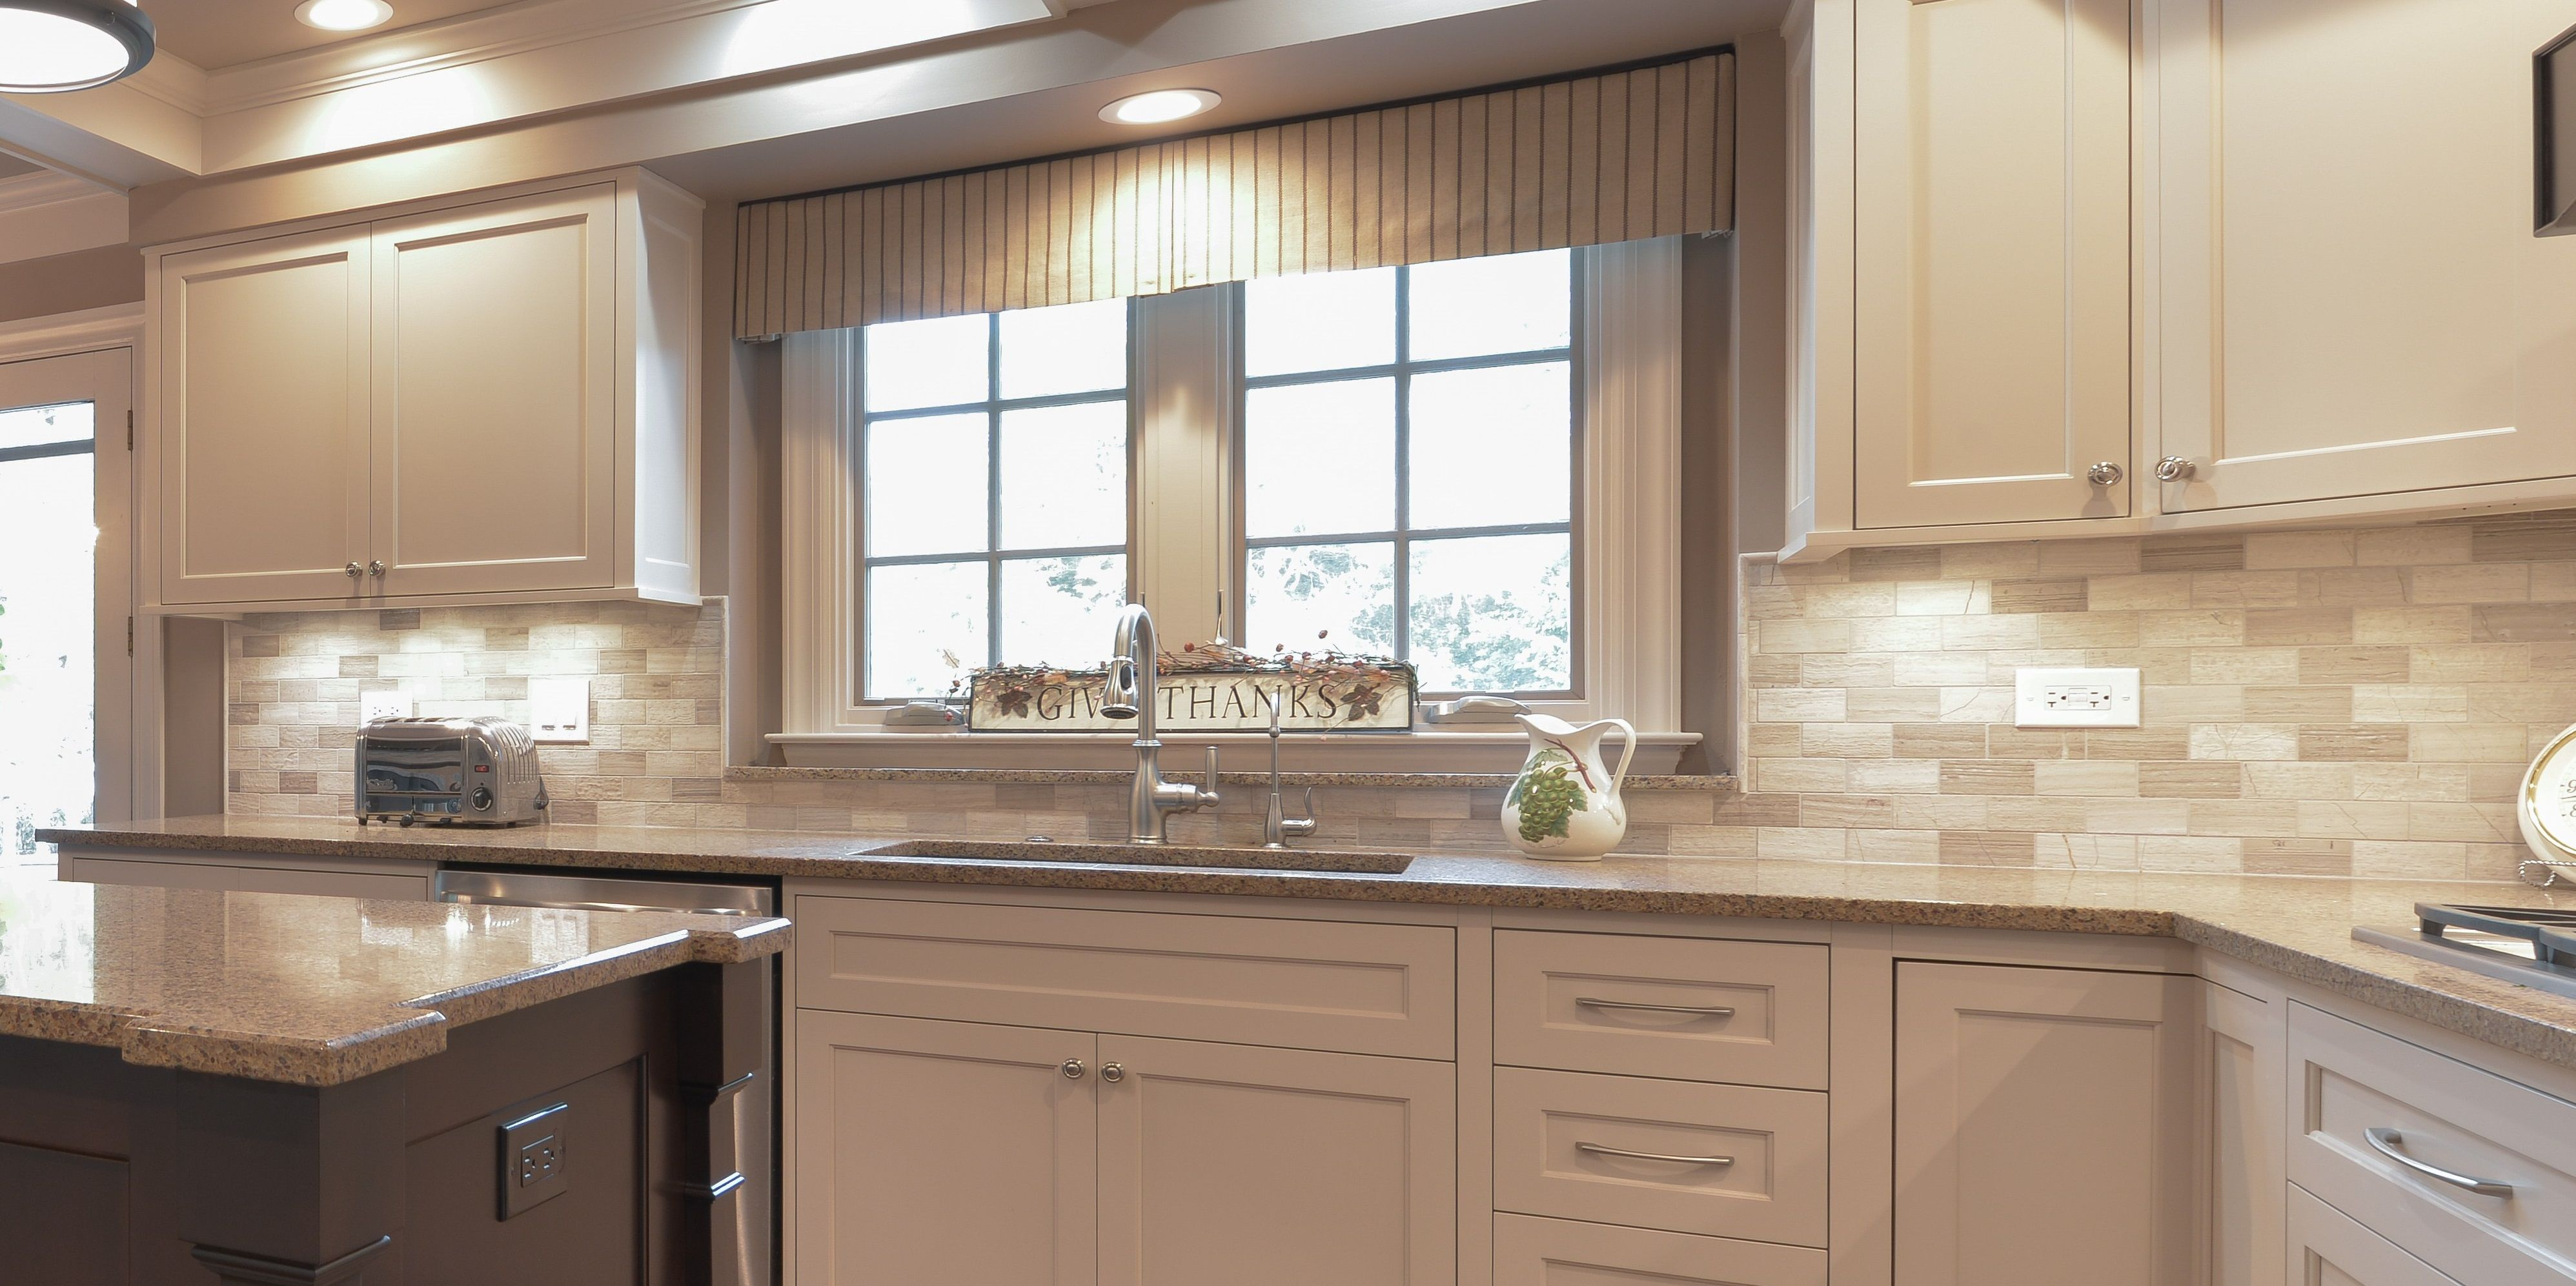 Expert Kitchens Remodeling Illinois Kitchen Interior Design Consultant